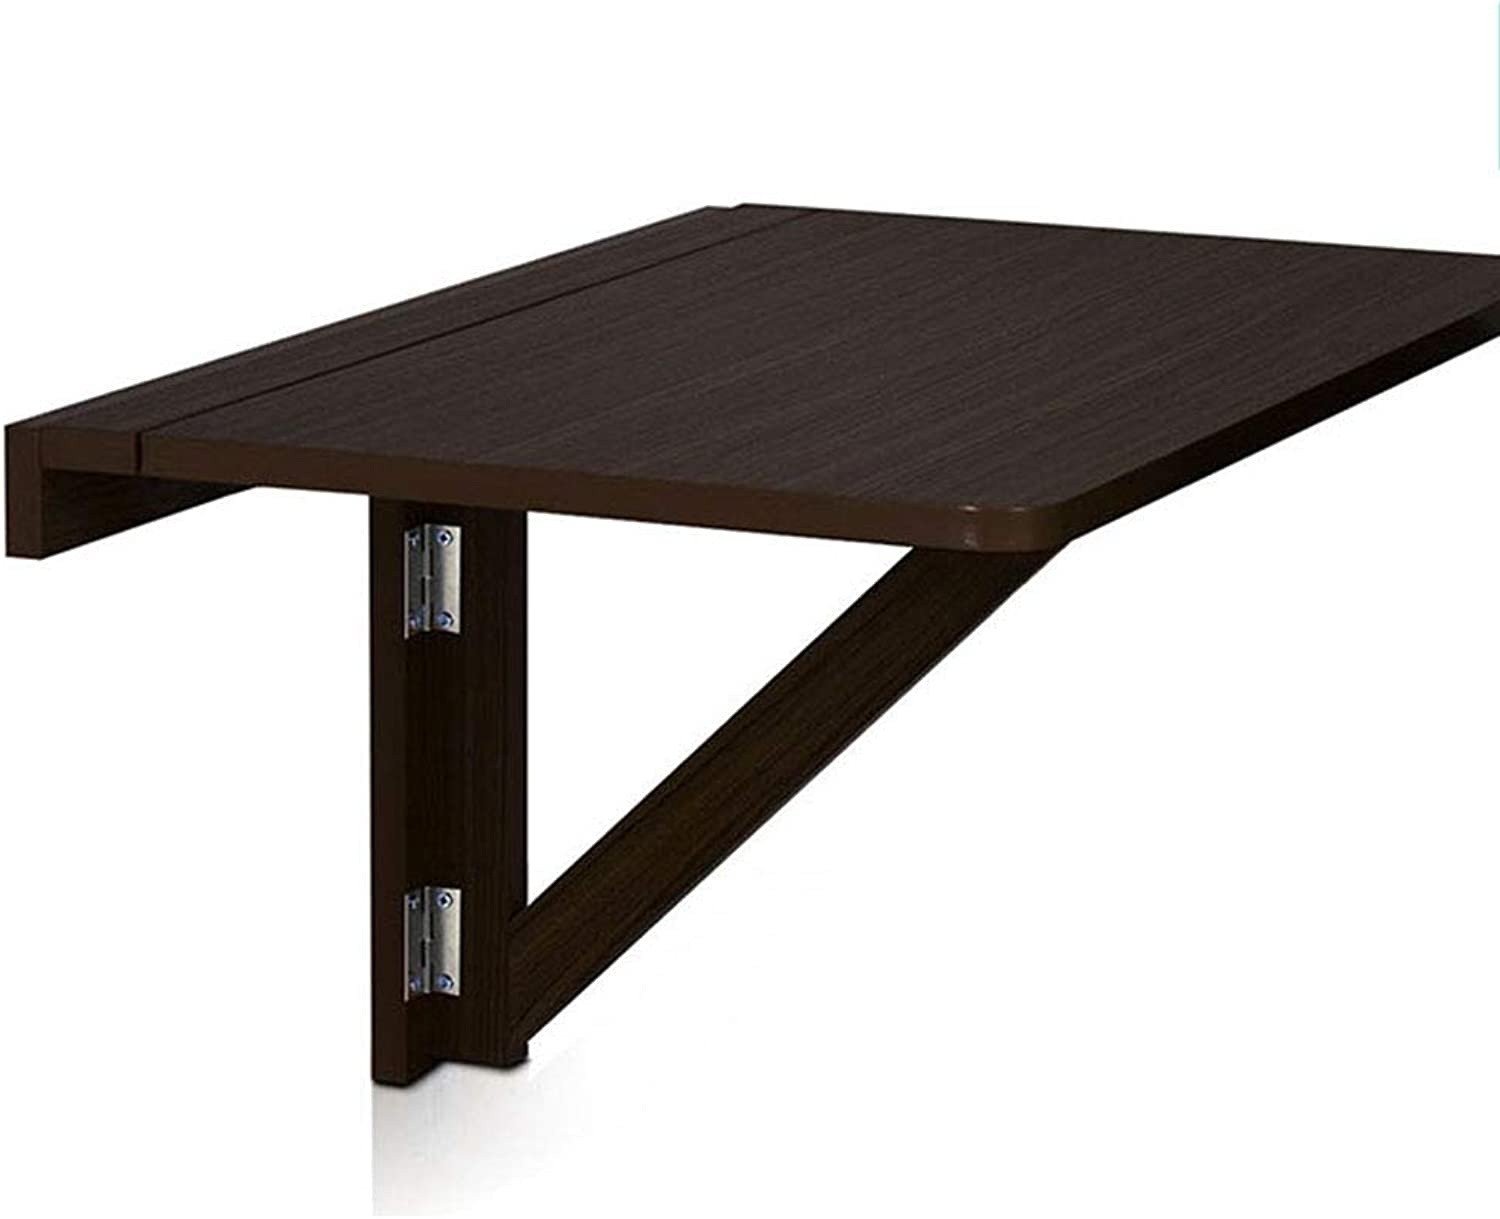 Virod-Desks Simple Folding Table Dorp-Leaf Table, Small Apartment Solid Wood Multifunction Simple Wall Mount Computer Desk, 2 colors Modern Style (color   Black)